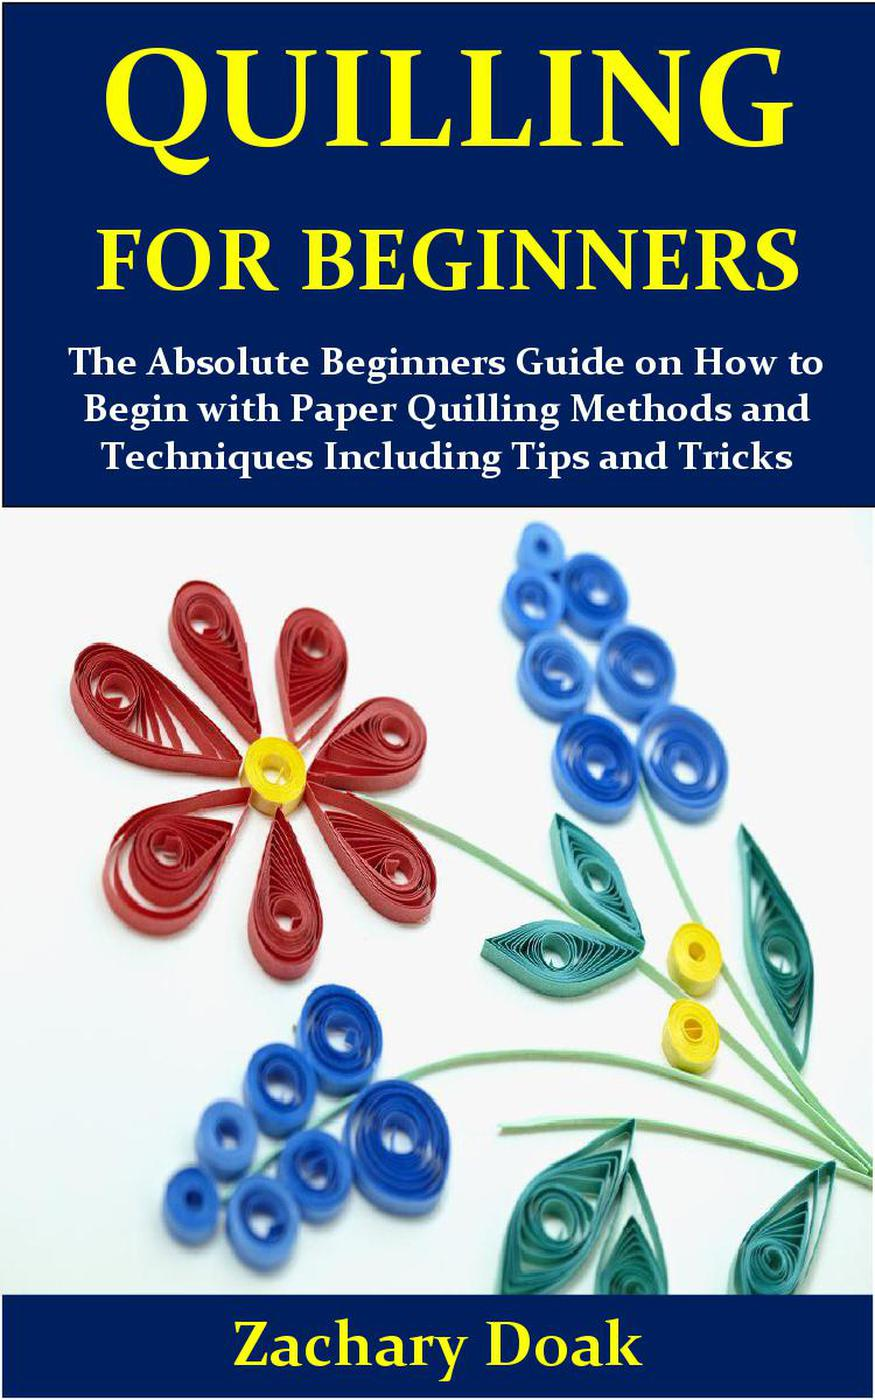 Quilling for Beginners:The Absolute Beginners Guide on How to Begin with Paper Quilling Methods and Techniques Including Tips and Tricks